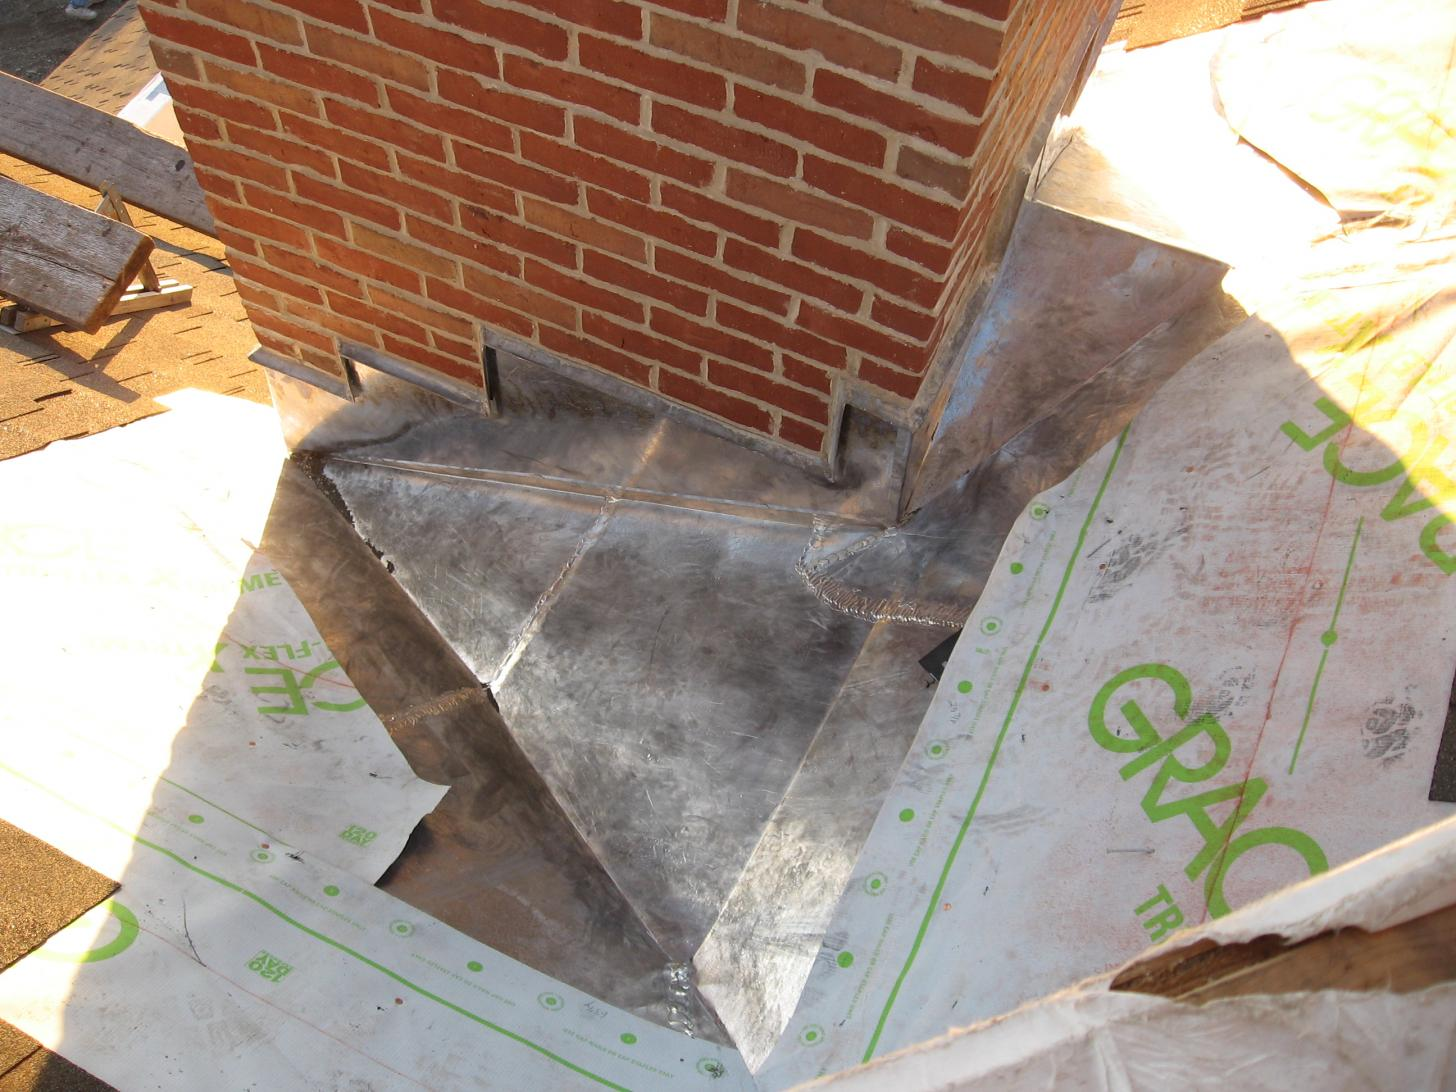 Chimney Step Flashing Vidieo Roofing Contractor Talk